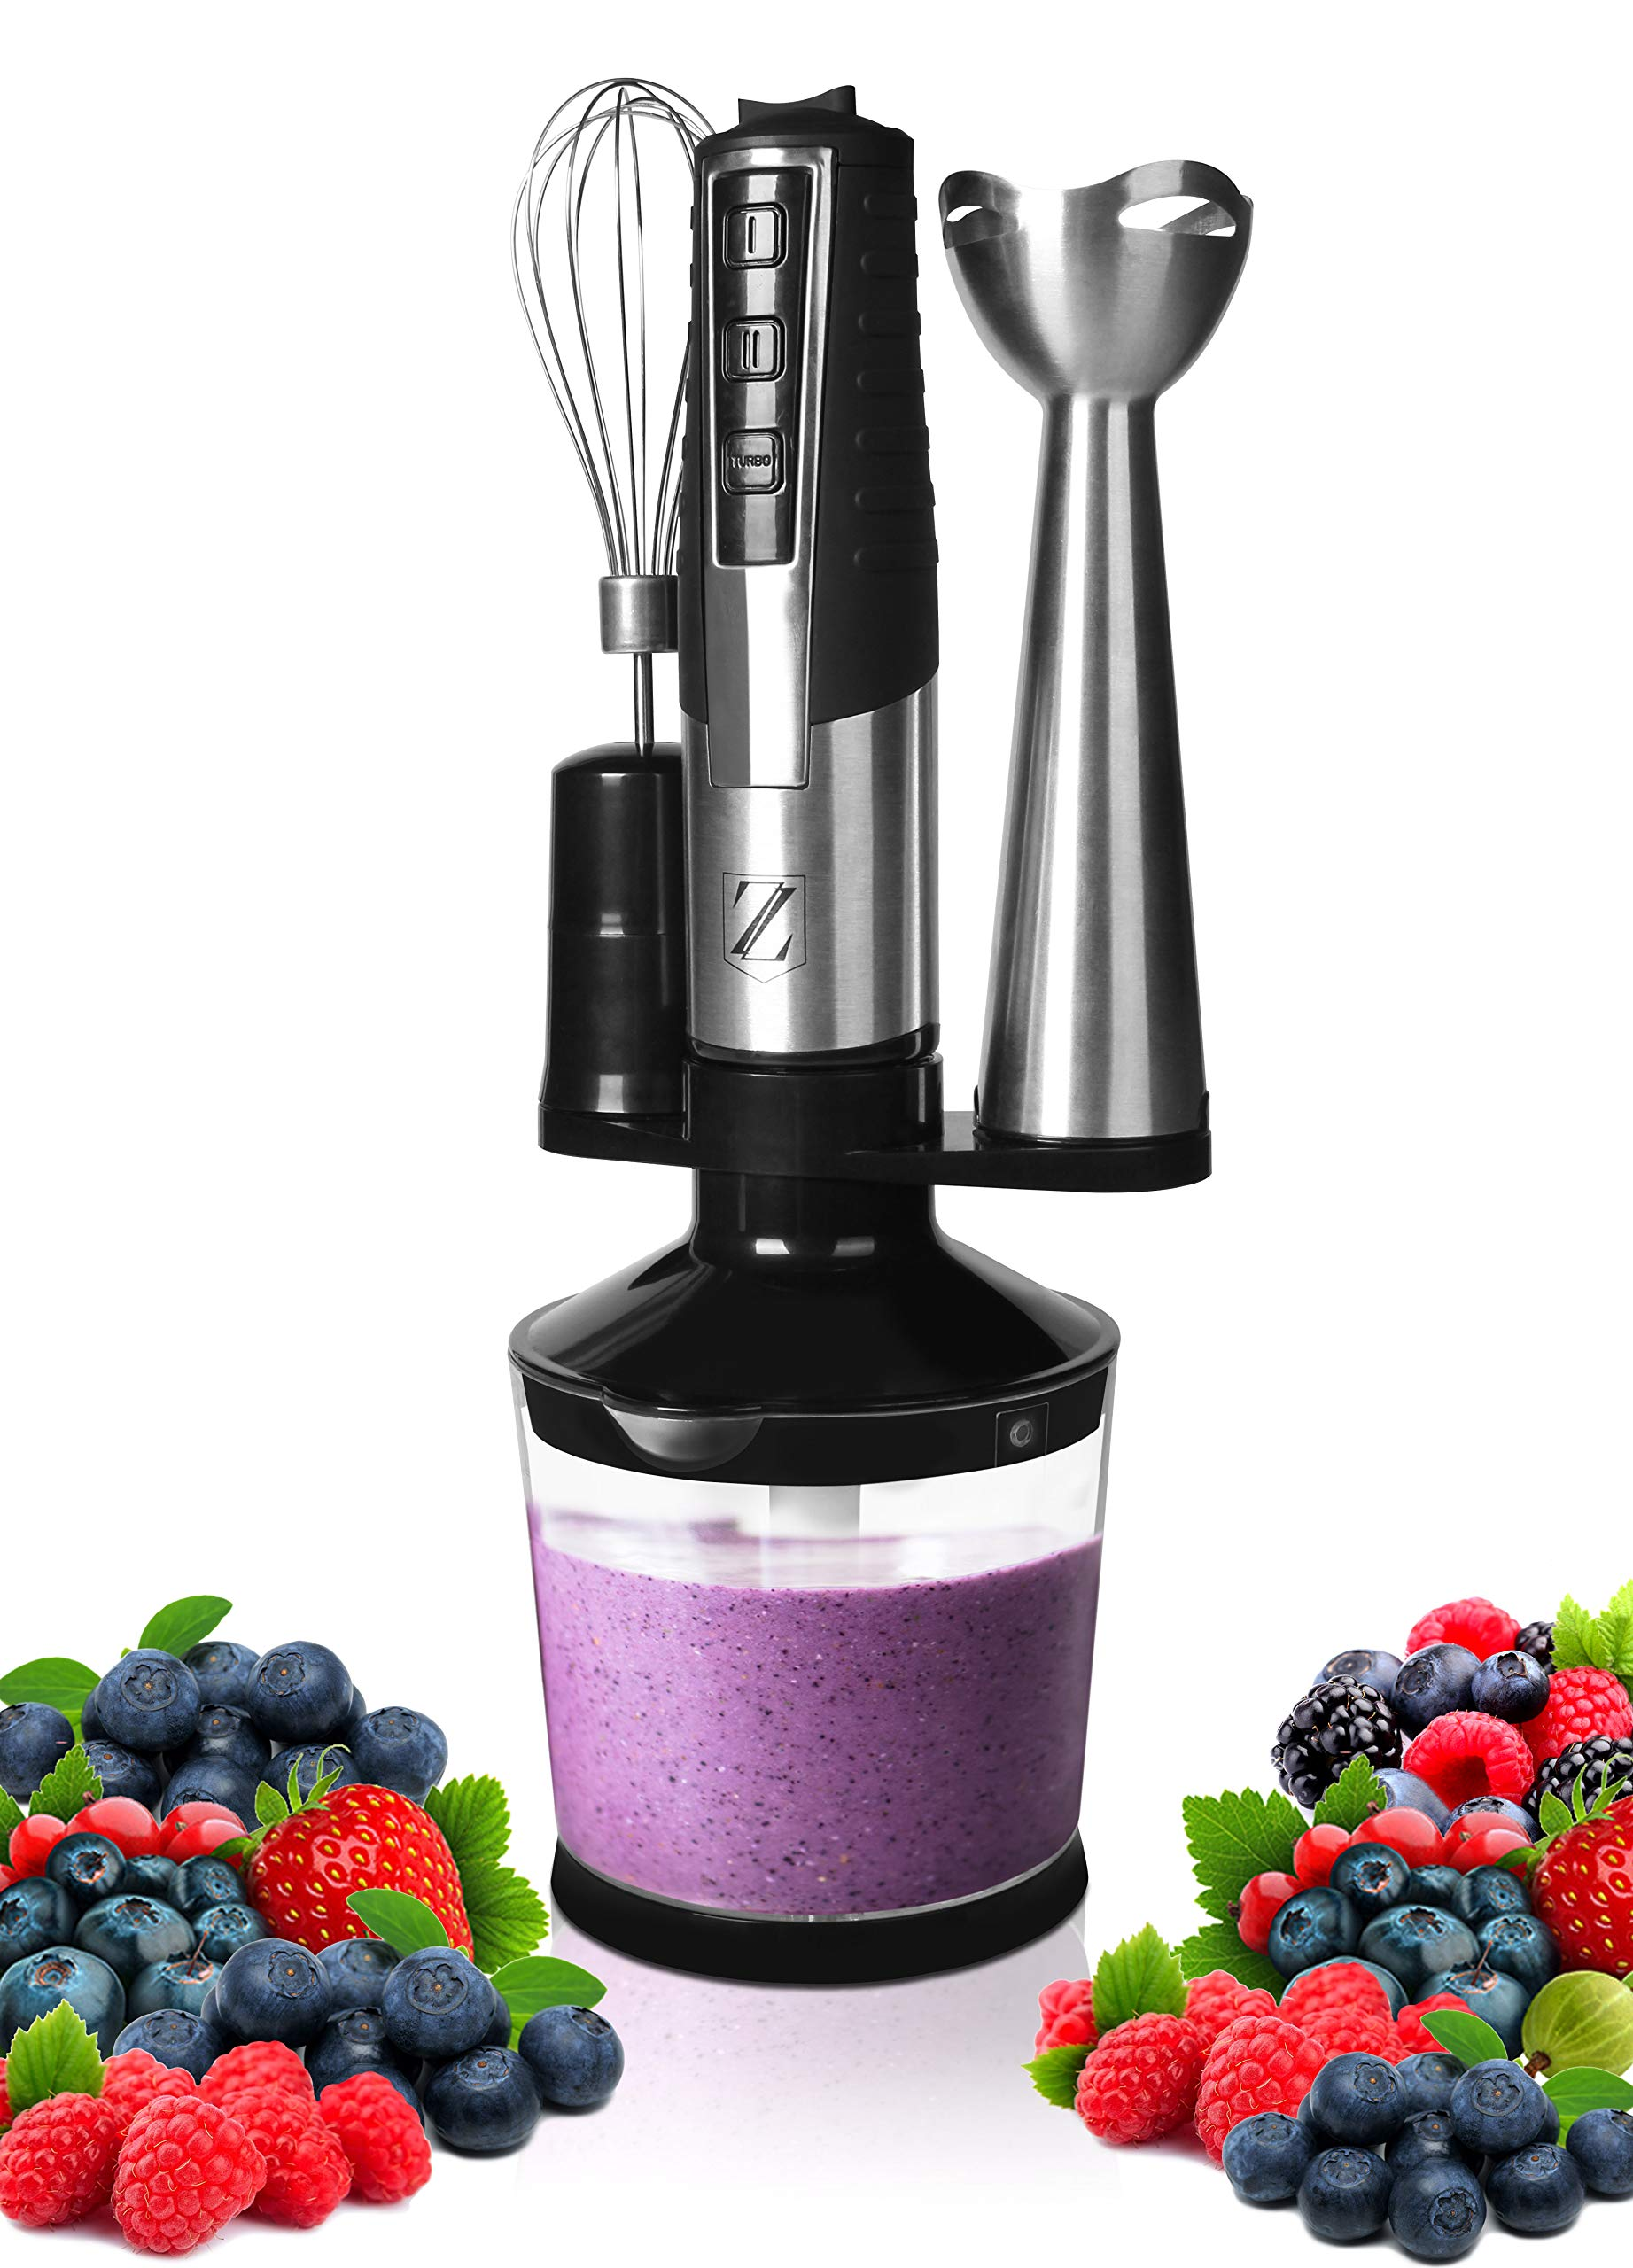 Zoyer Powerful Multifunctional Electric Immersion Hand Blender Set - 3 Touch System & Rotating Adjustable Speed - Come with 8'' Removable Blending Arm Soft & Non-Slip Handle by ZOYER